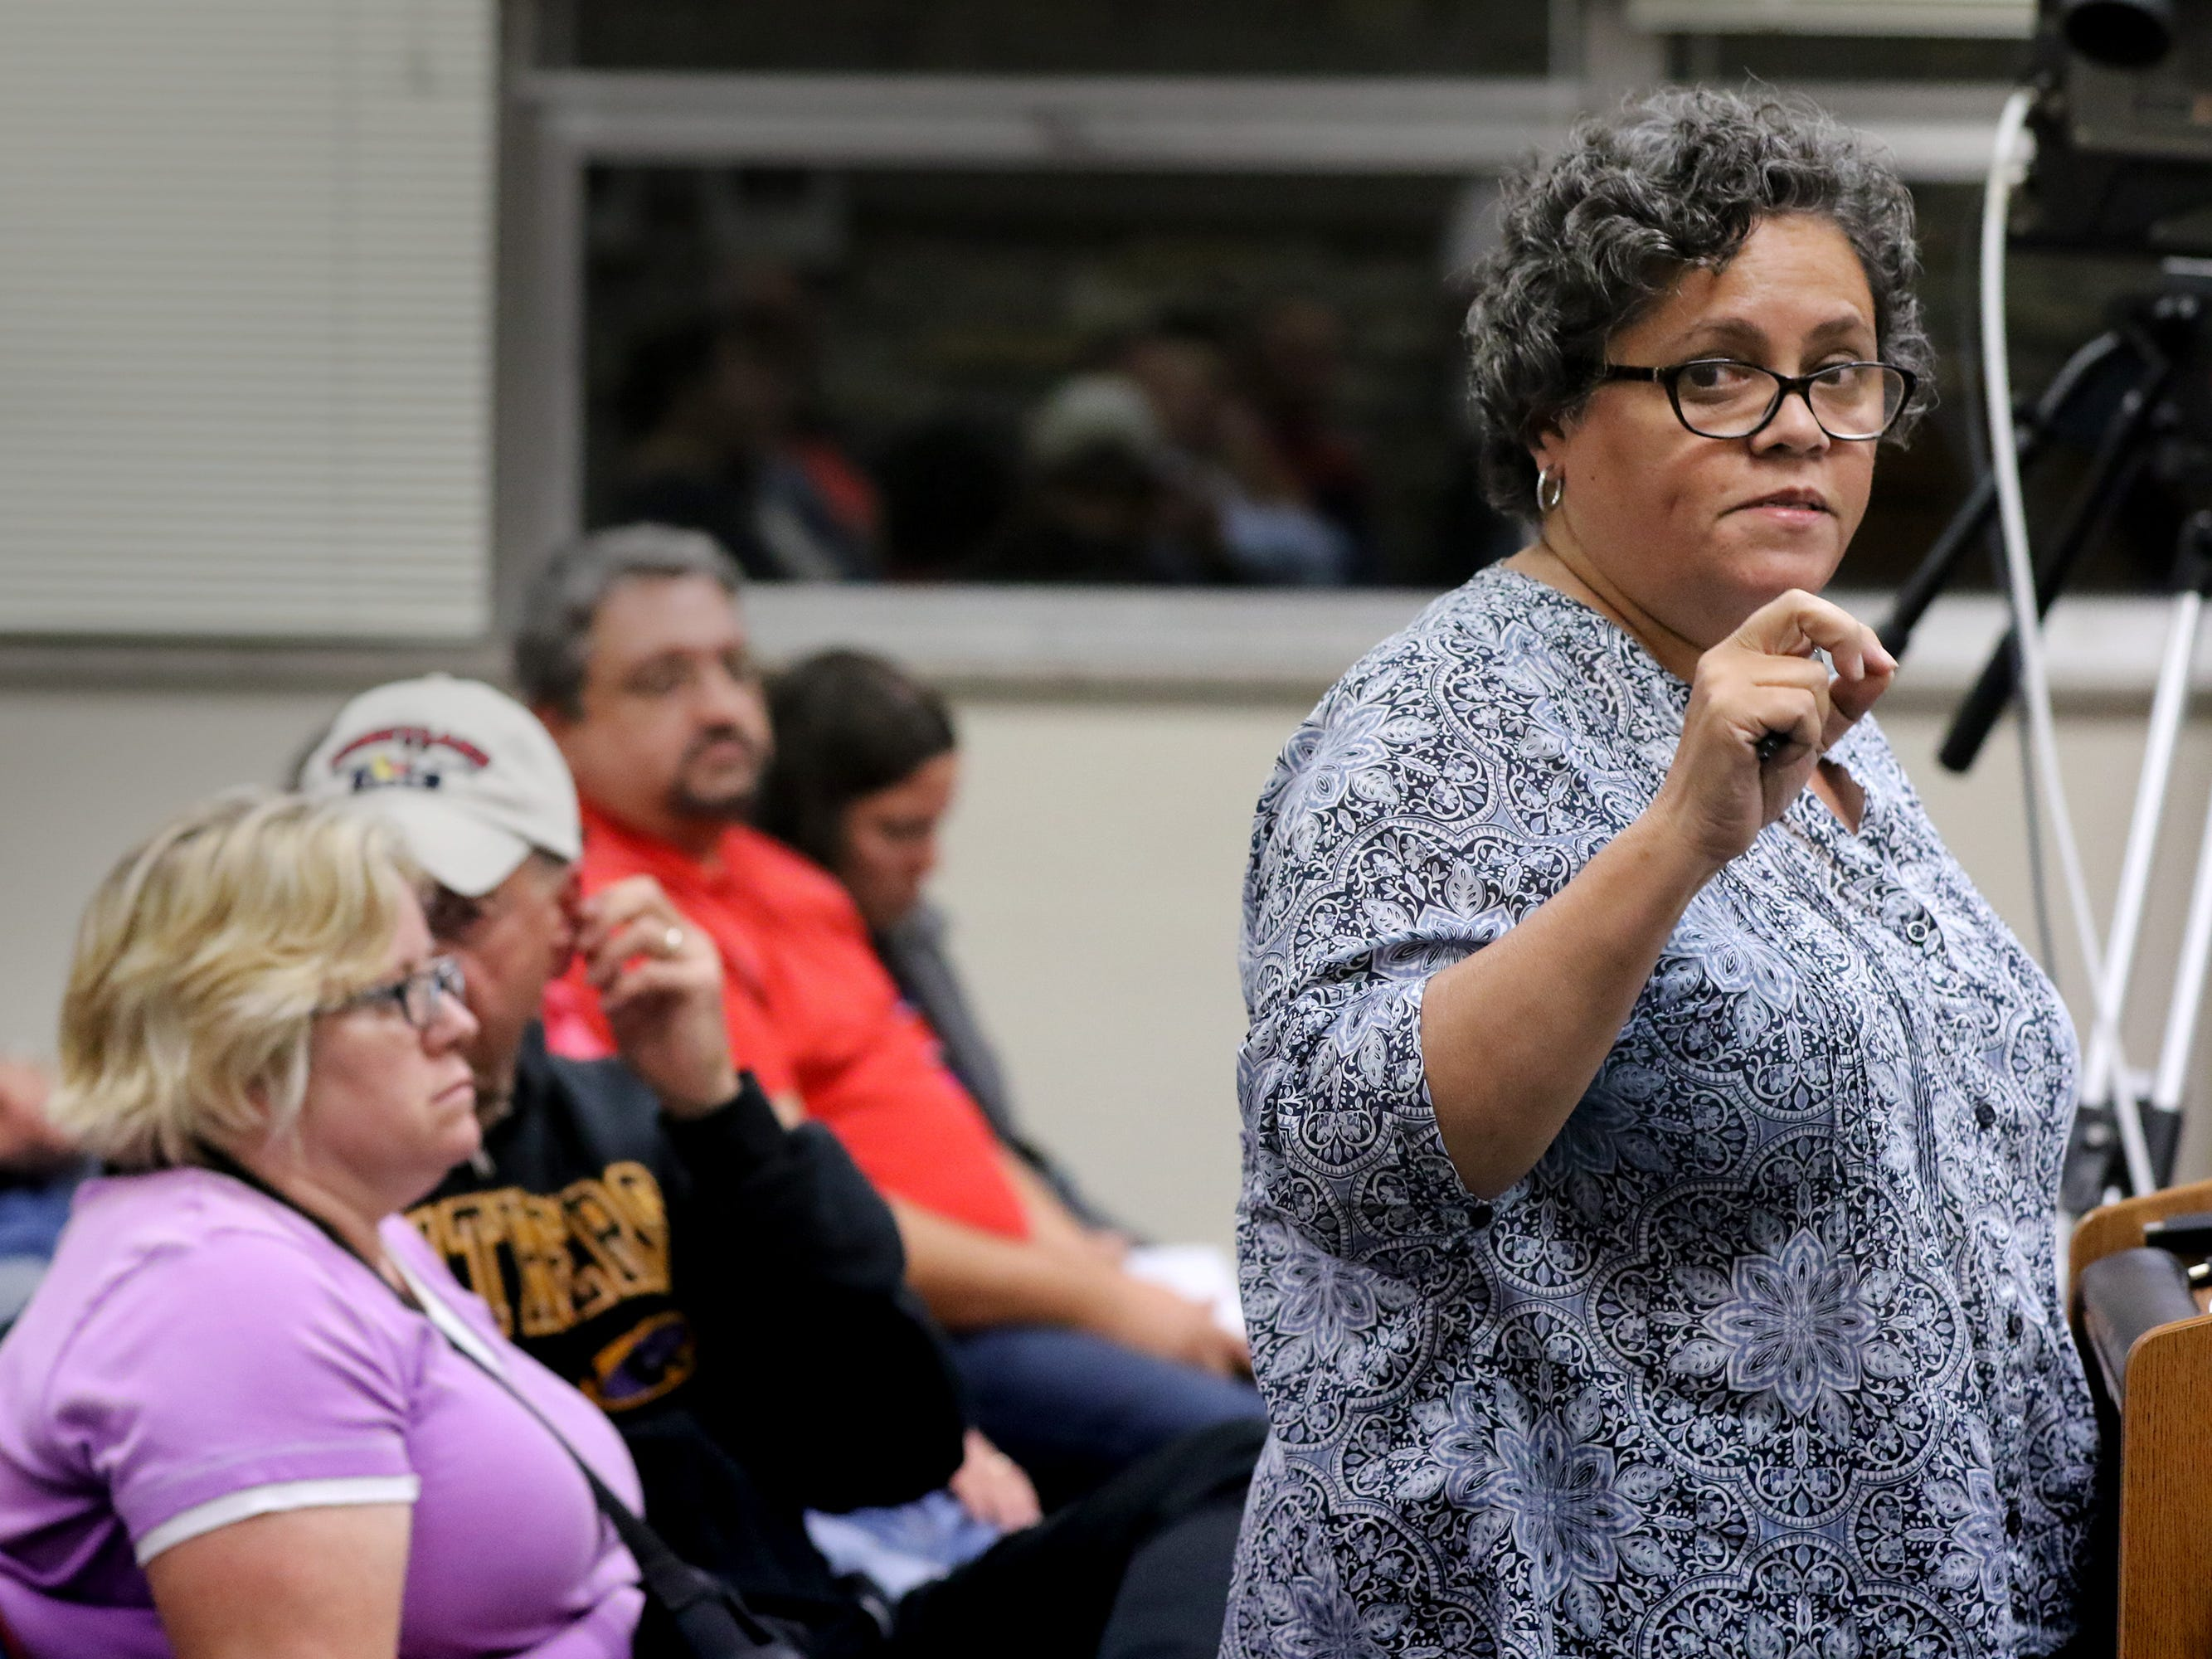 Wauwatosa resident Carmen Ortiz spoke in favor of a controversial proposal to consider a resolution on what steps would be taken if Wauwatosa is to consider becoming a sanctuary city. The issue brought out a huge crowd at  Wauwatosa's Government Affairs Committee on Sept. 11.